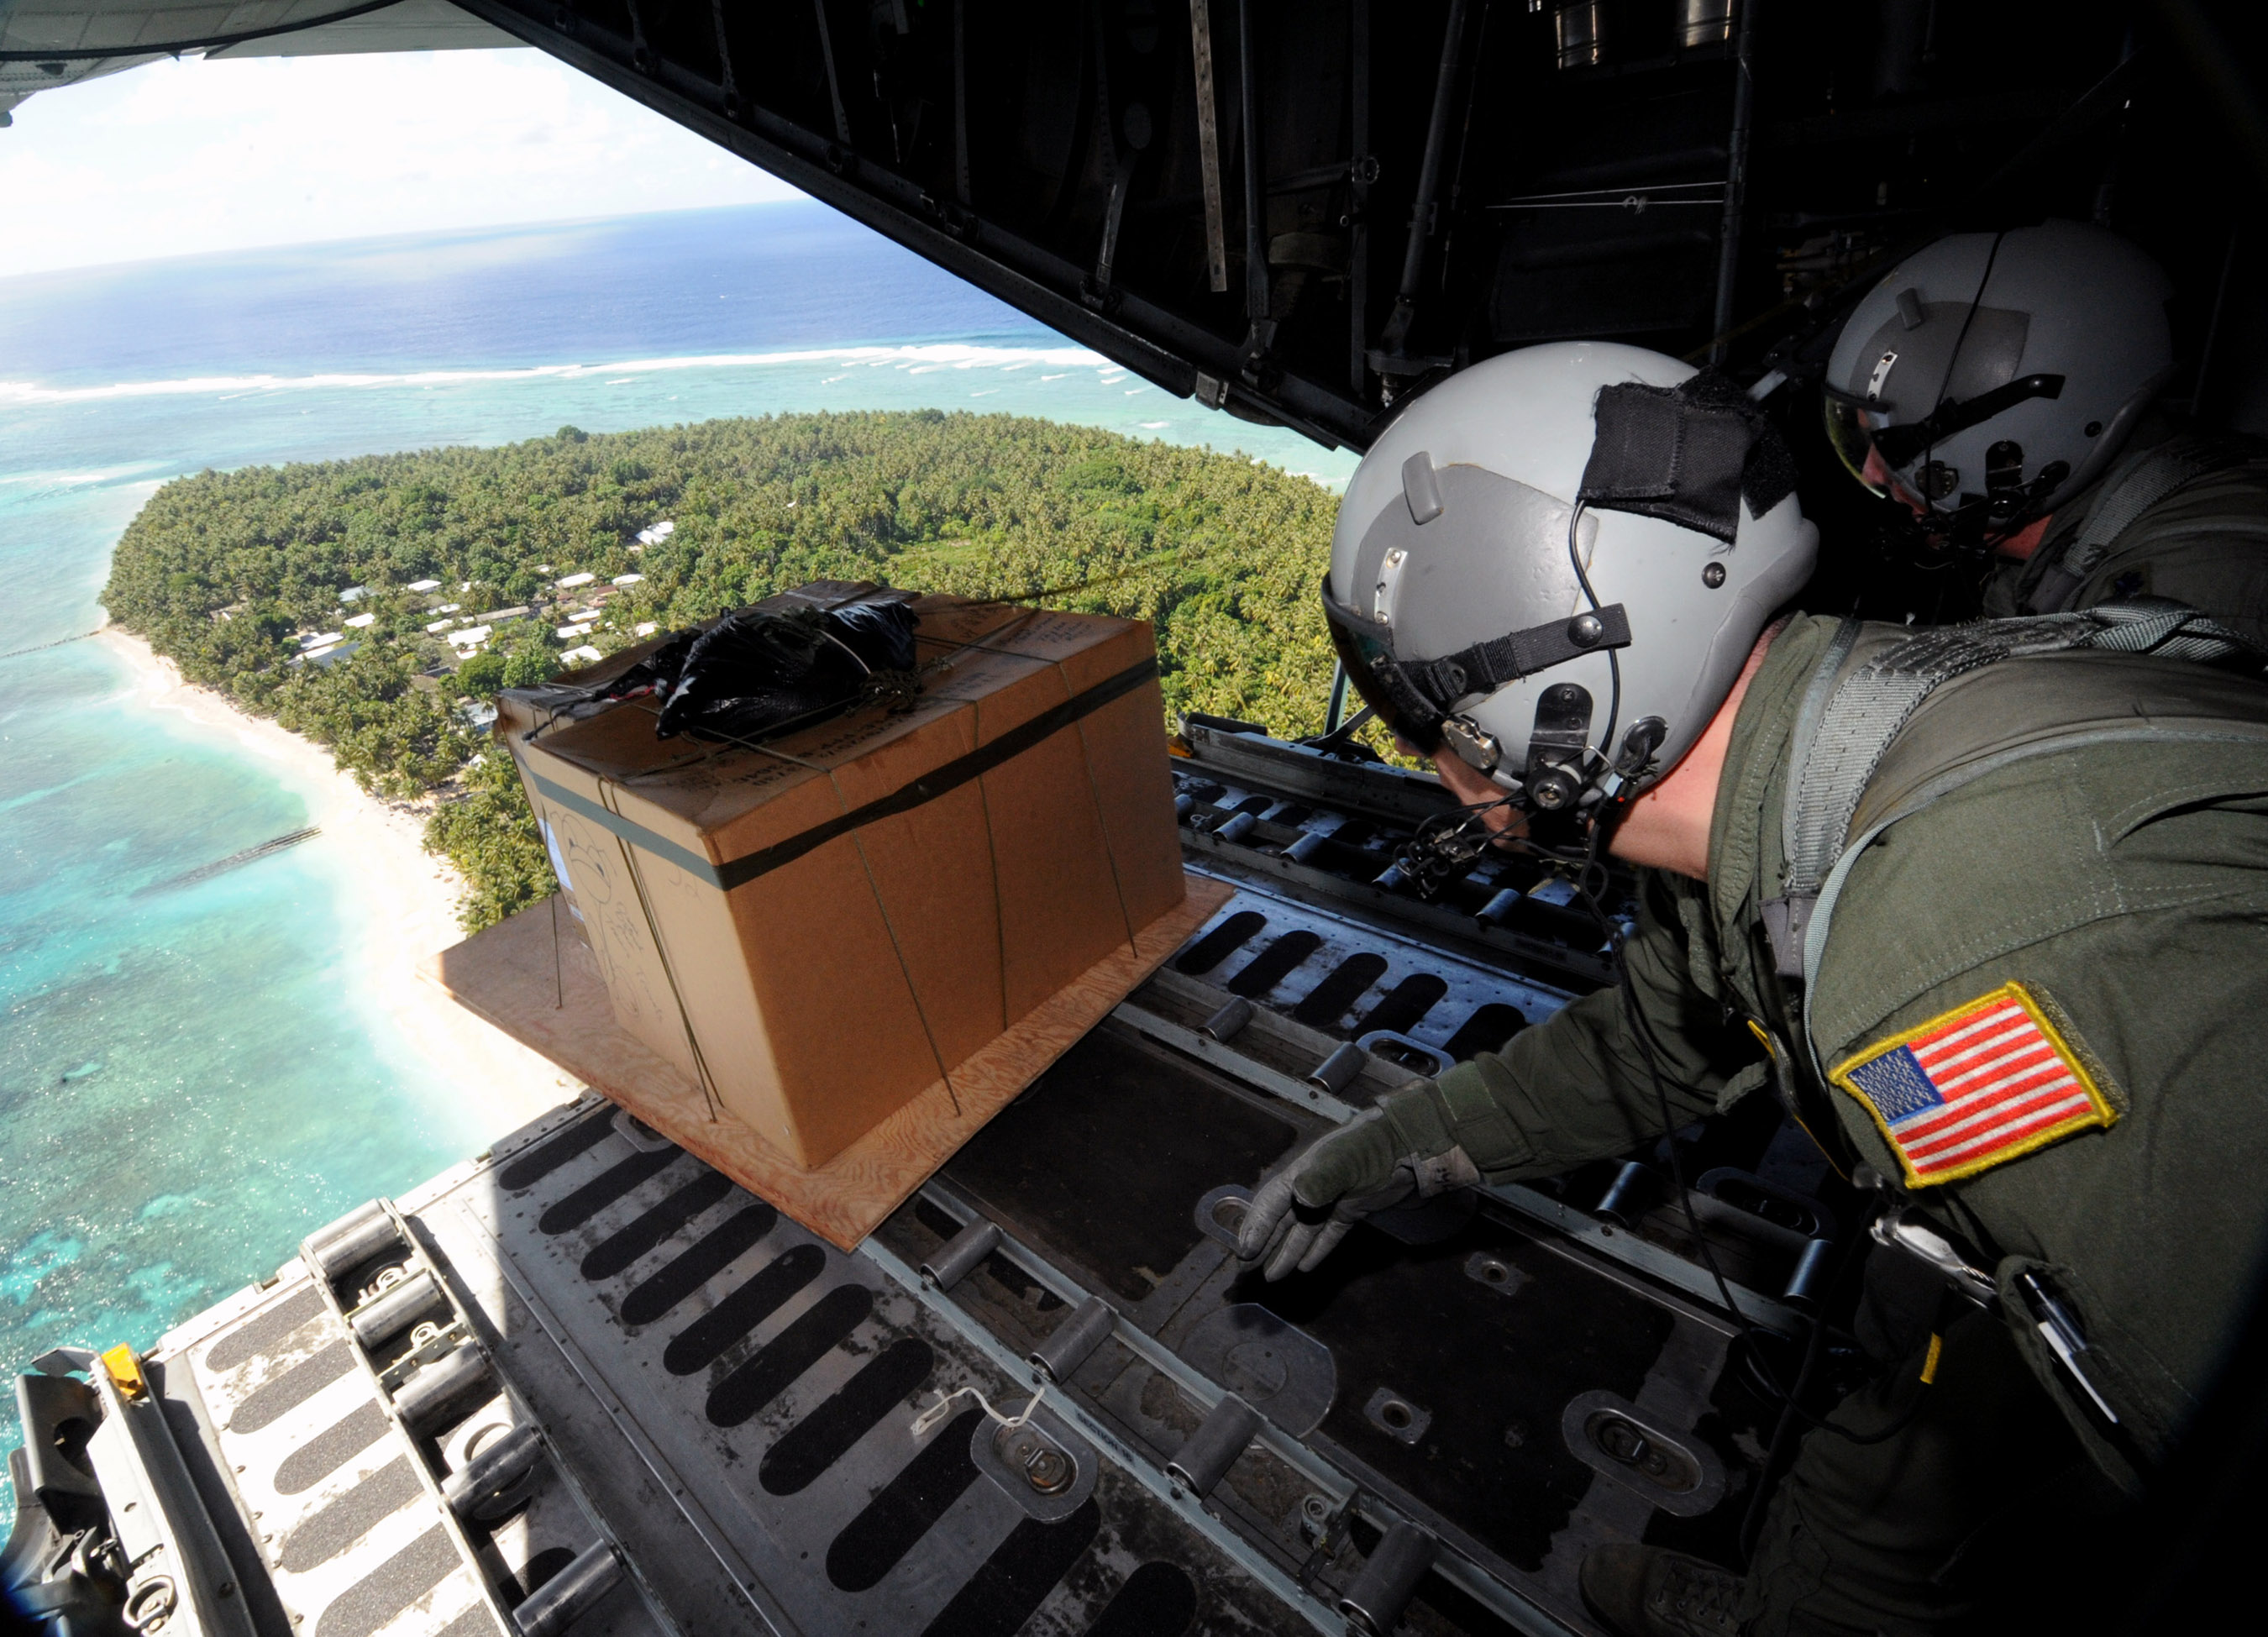 Tech. Sgt. Heath Bahyi and Chief Master Sgt. Michael Sundberg push out a boxed pallet of donated goods over the remote Island of Yap from a C-130 Hercules, Dec. 19 during Operation Christmas Drop. Airmen today continue the tradition, delivering supplies to remote islands of the Commonwealth of the Northern Marianas Islands, Yap, Palau, Chuuk and Pohnpei. In all, more than 180 boxes were built for the humanitarian mission, making 2008 one of the largest drops in Operation Christmas Drop's 57 year history. Both are loadmasters from the 36th Airlift Squadron, Yokota AB, Japan. (U.S. Air Force photo/ Master Sgt. Kevin J. Gruenwald) released..